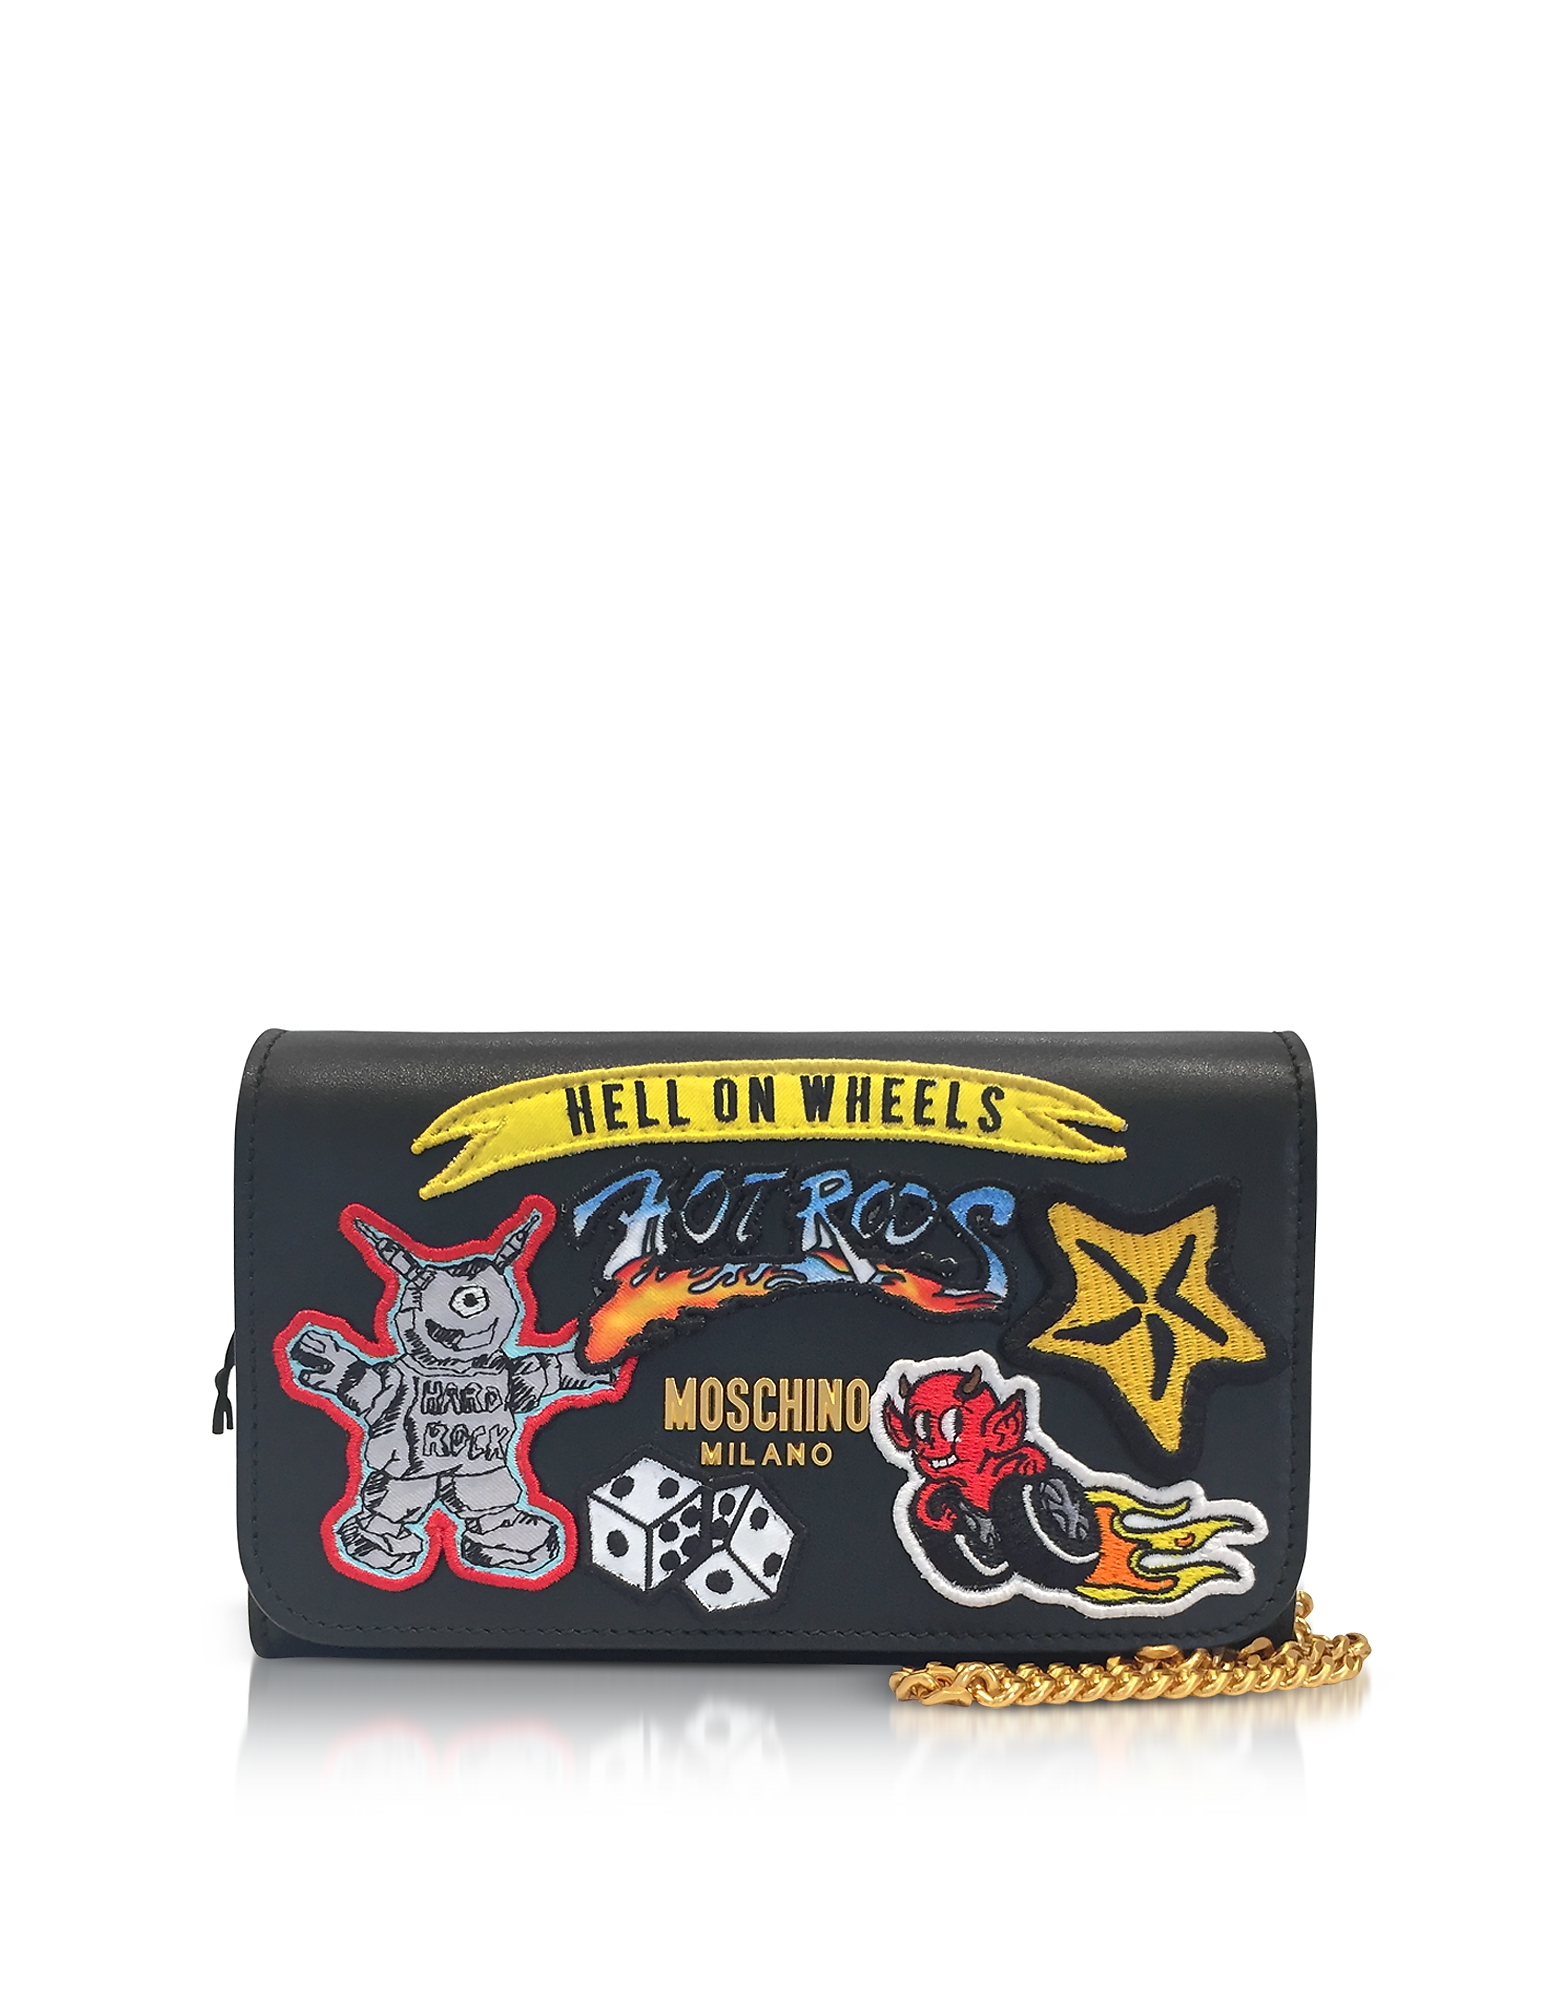 Moschino Handbags, Black Leather Wallet Clutch w/Patches